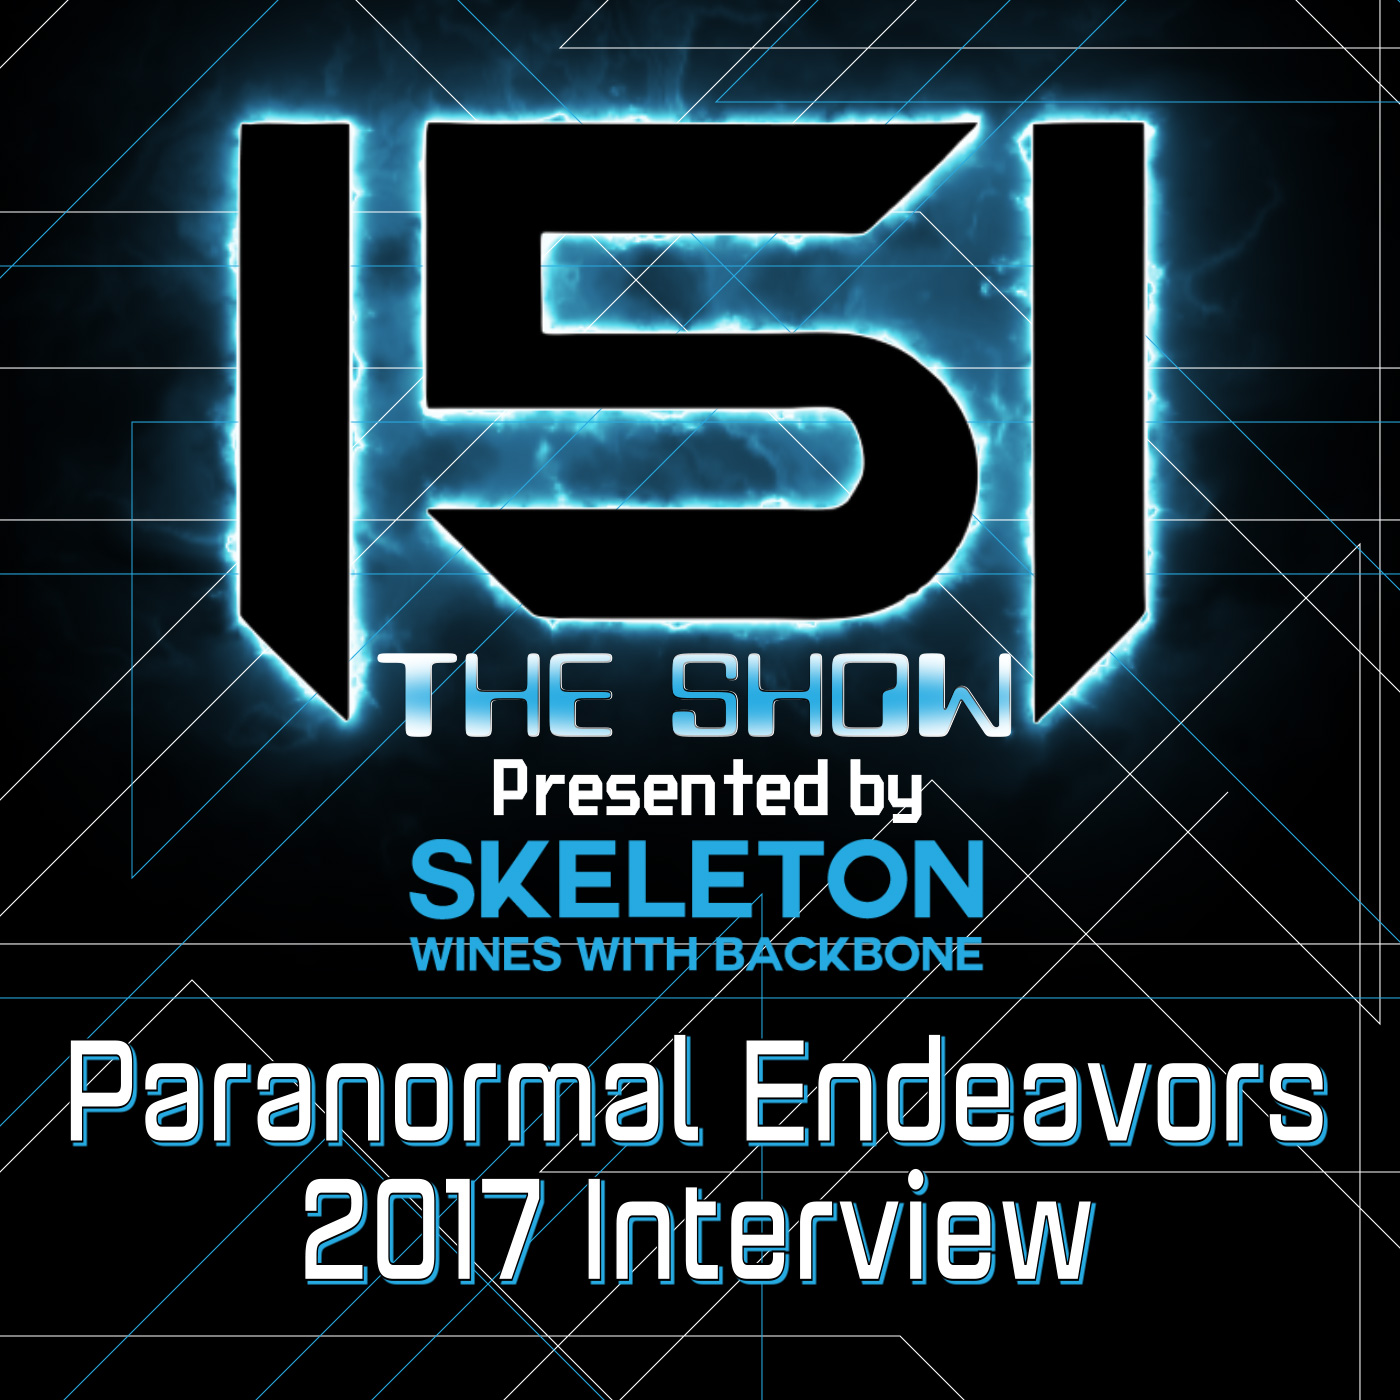 Paranormal Endeavors Interview 2017